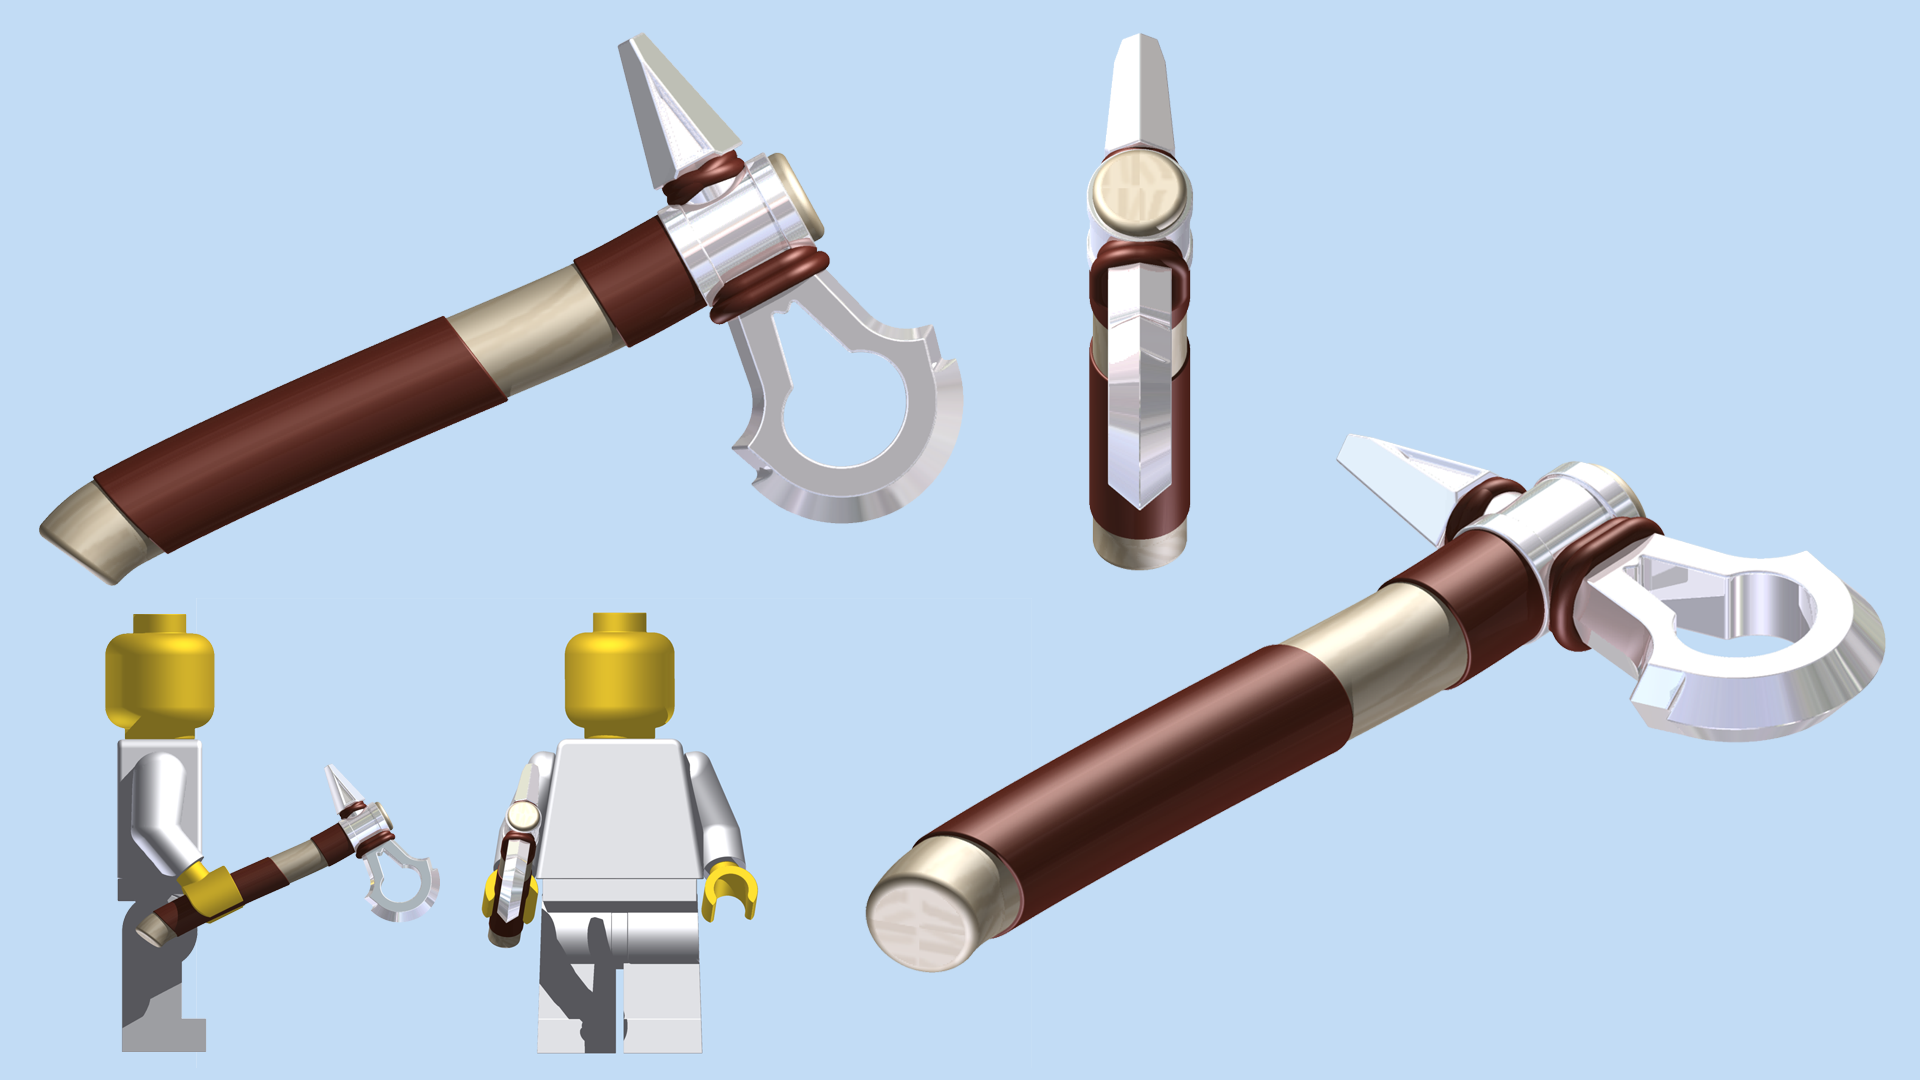 Lego Assassin S Creed Tomahawk By Mingles On Deviantart